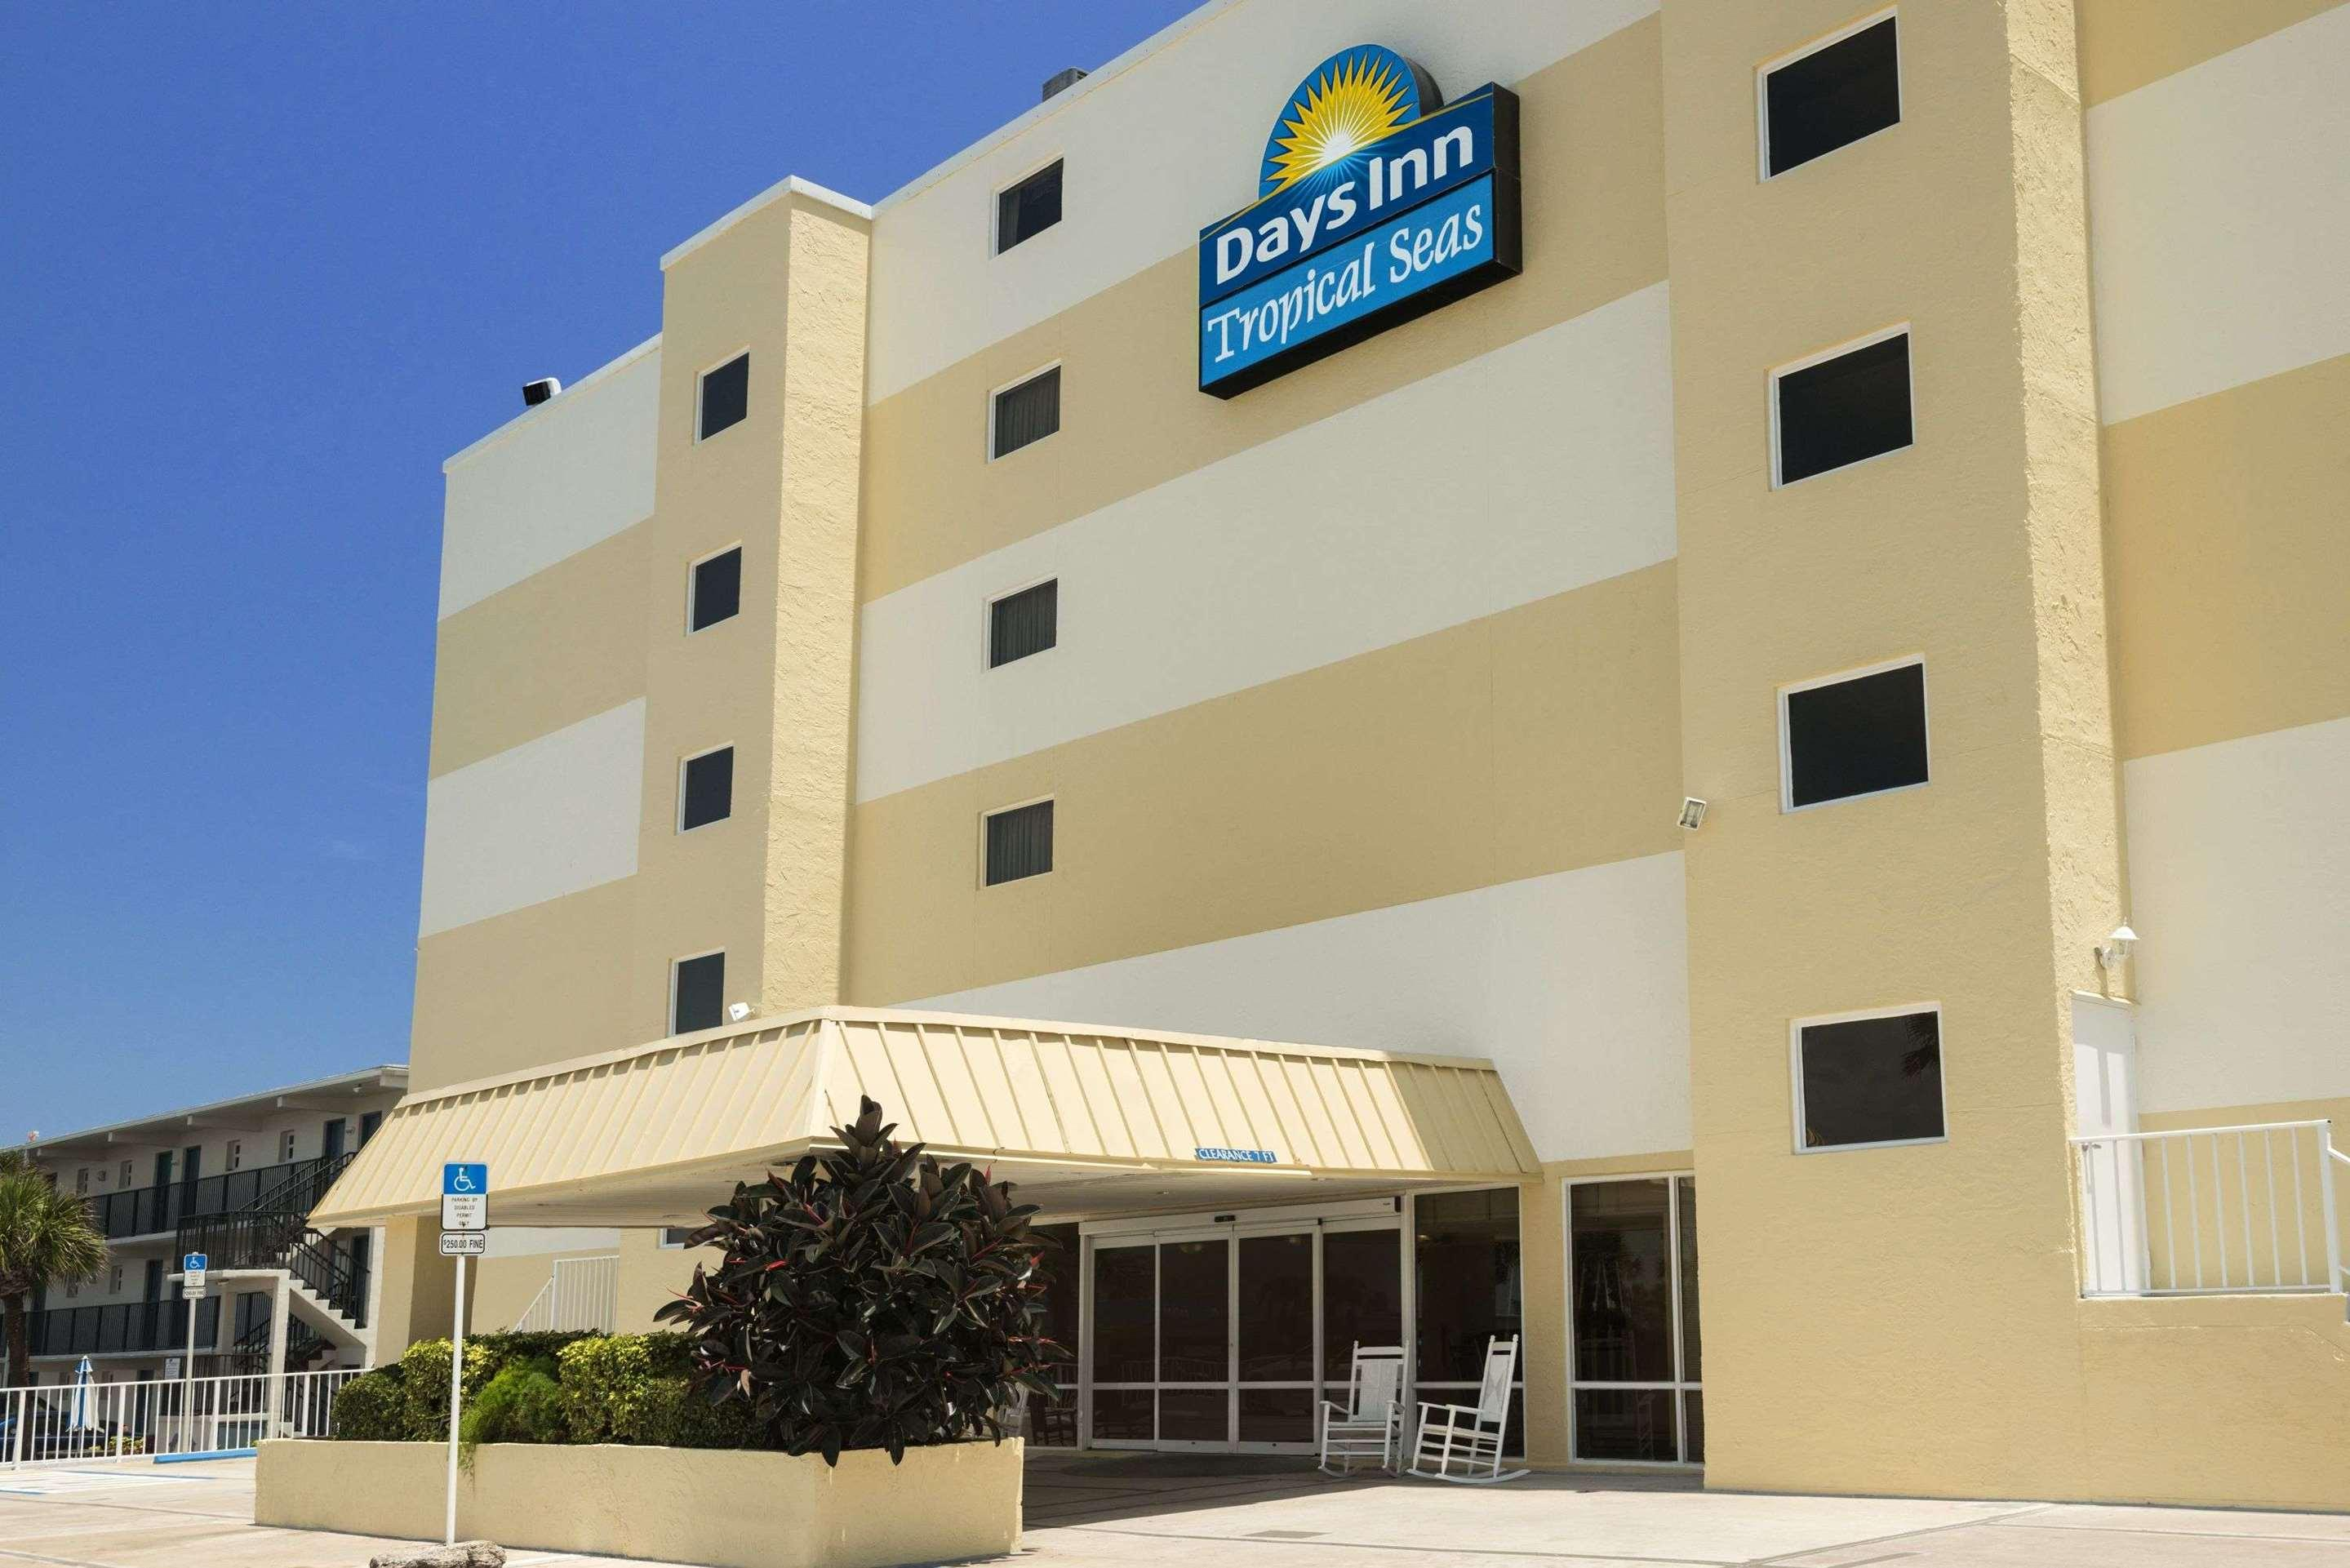 Days Inn by Wyndham Daytona Oceanfront